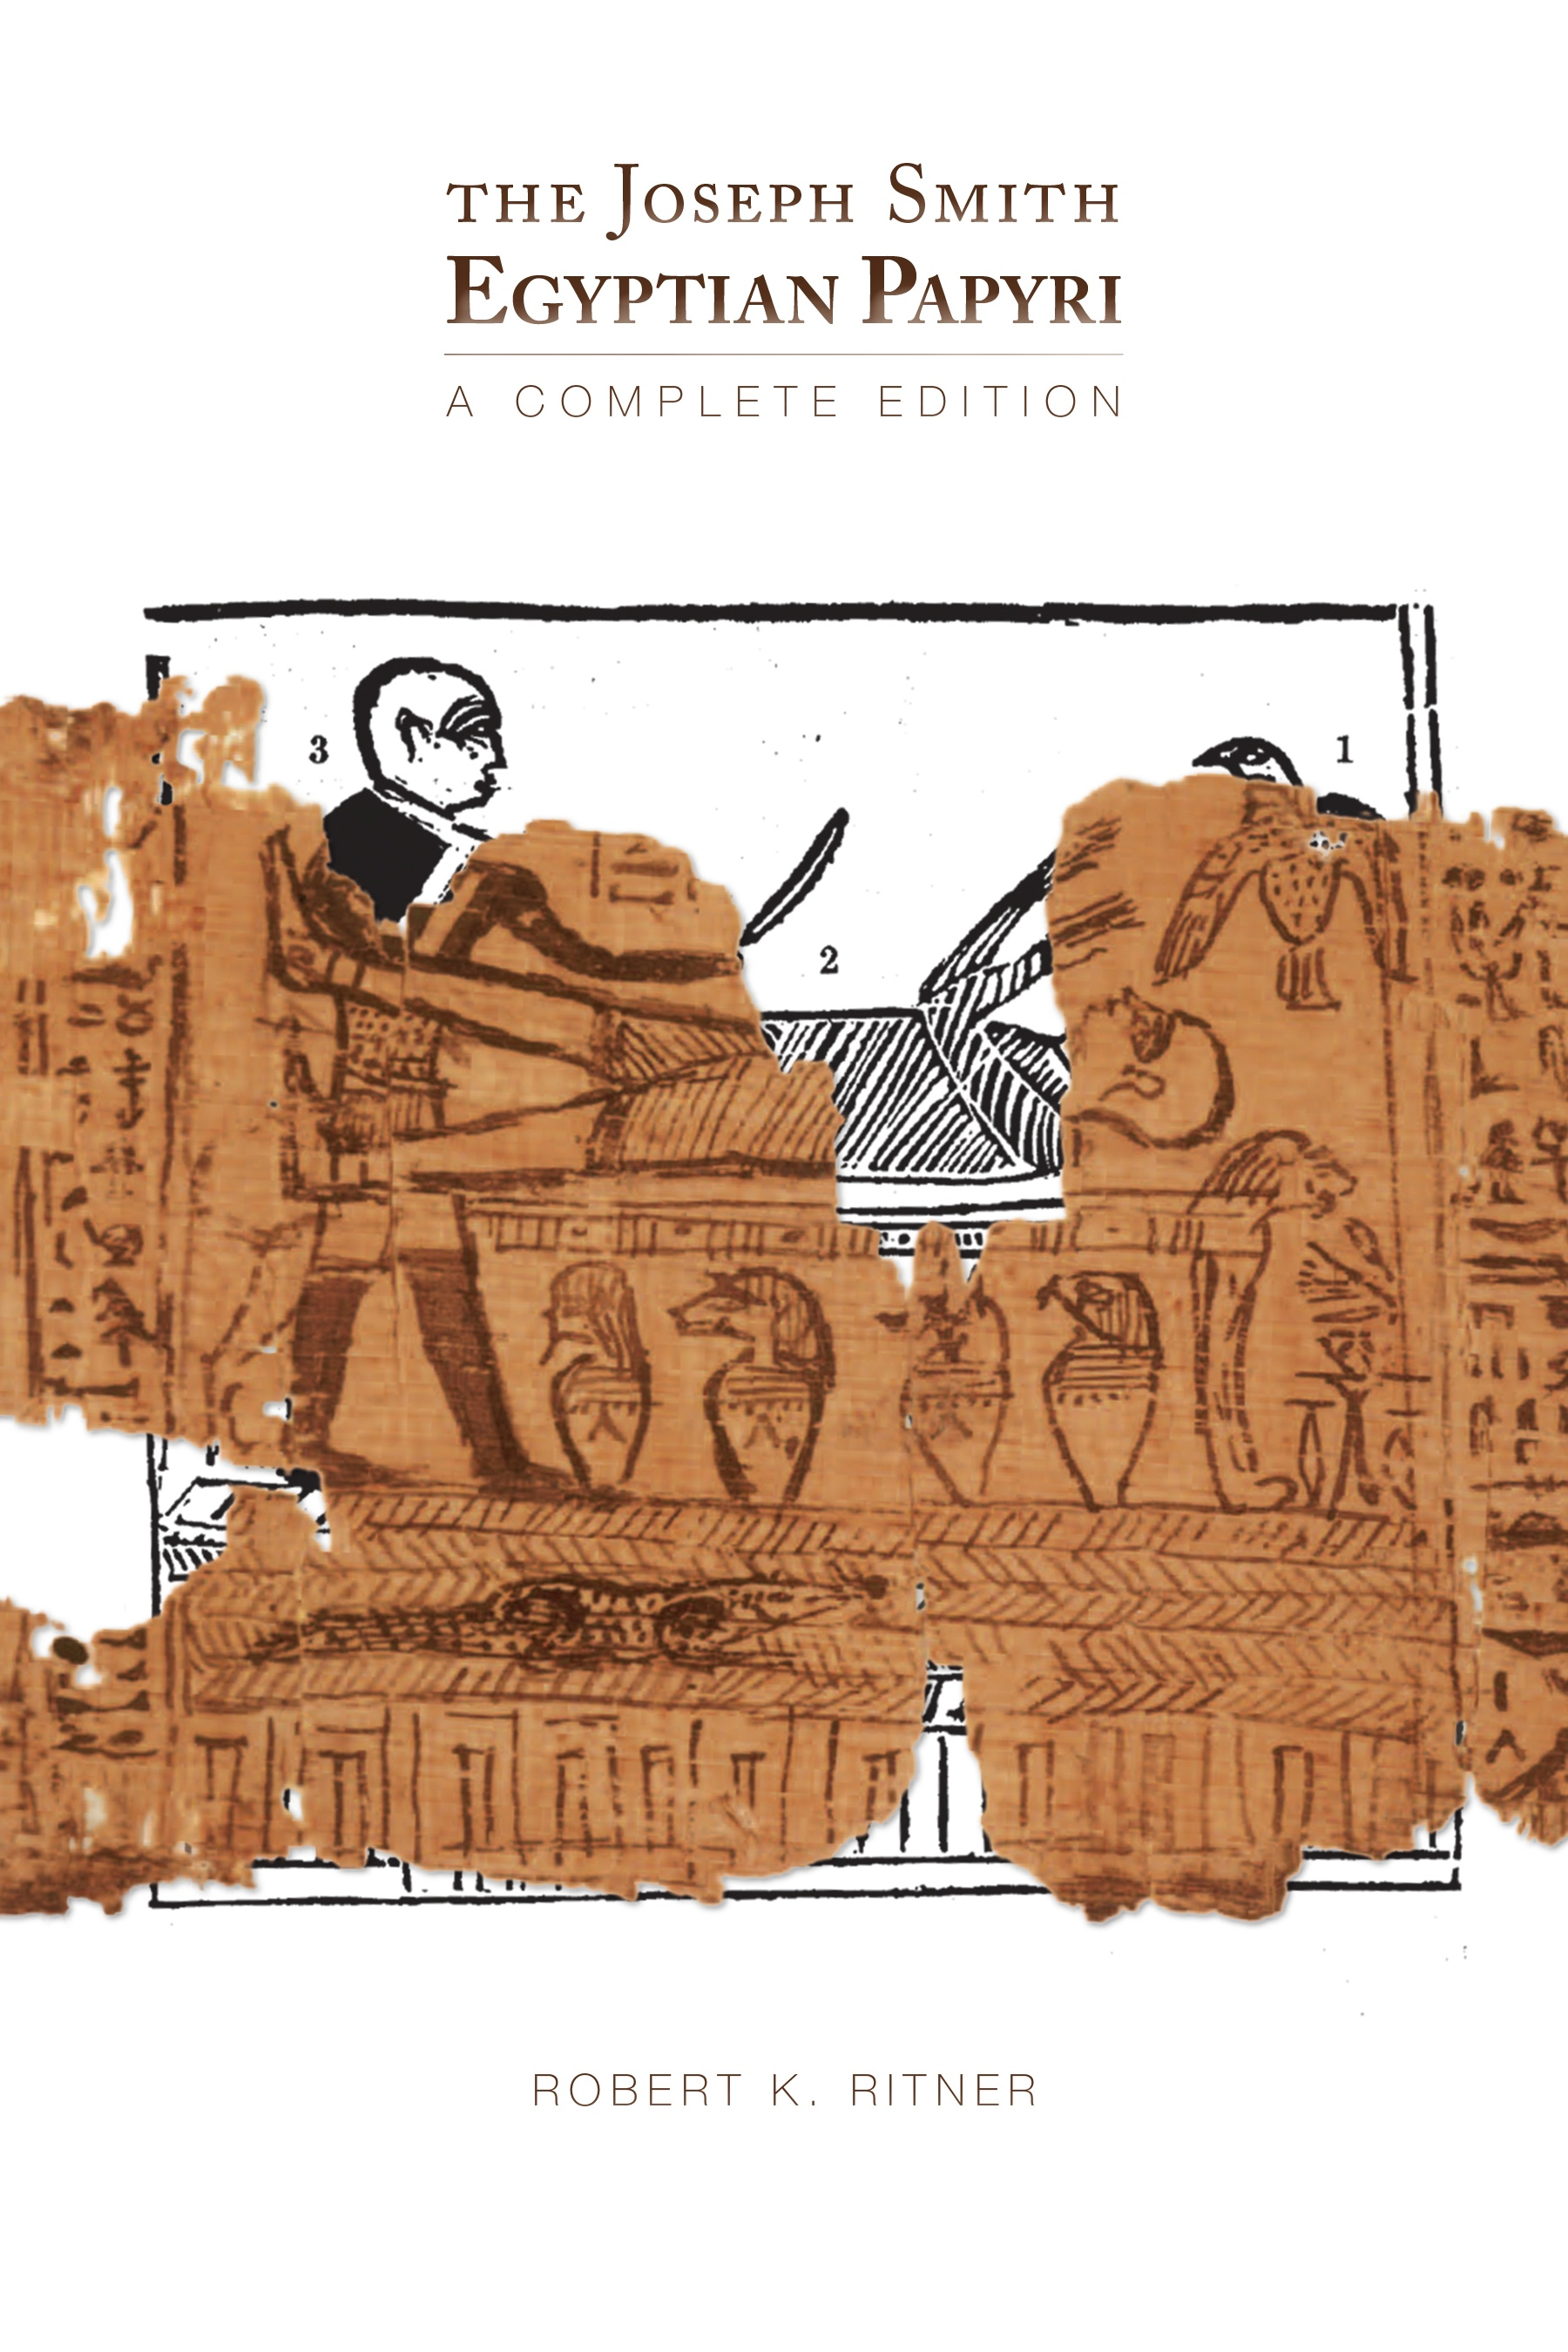 The Joseph Smith Egyptian Papyri - A Complete Edition, Ritner, Robert K. Contributions by Christopher Woods, Marc Coenen, and H. Michael Marquardt